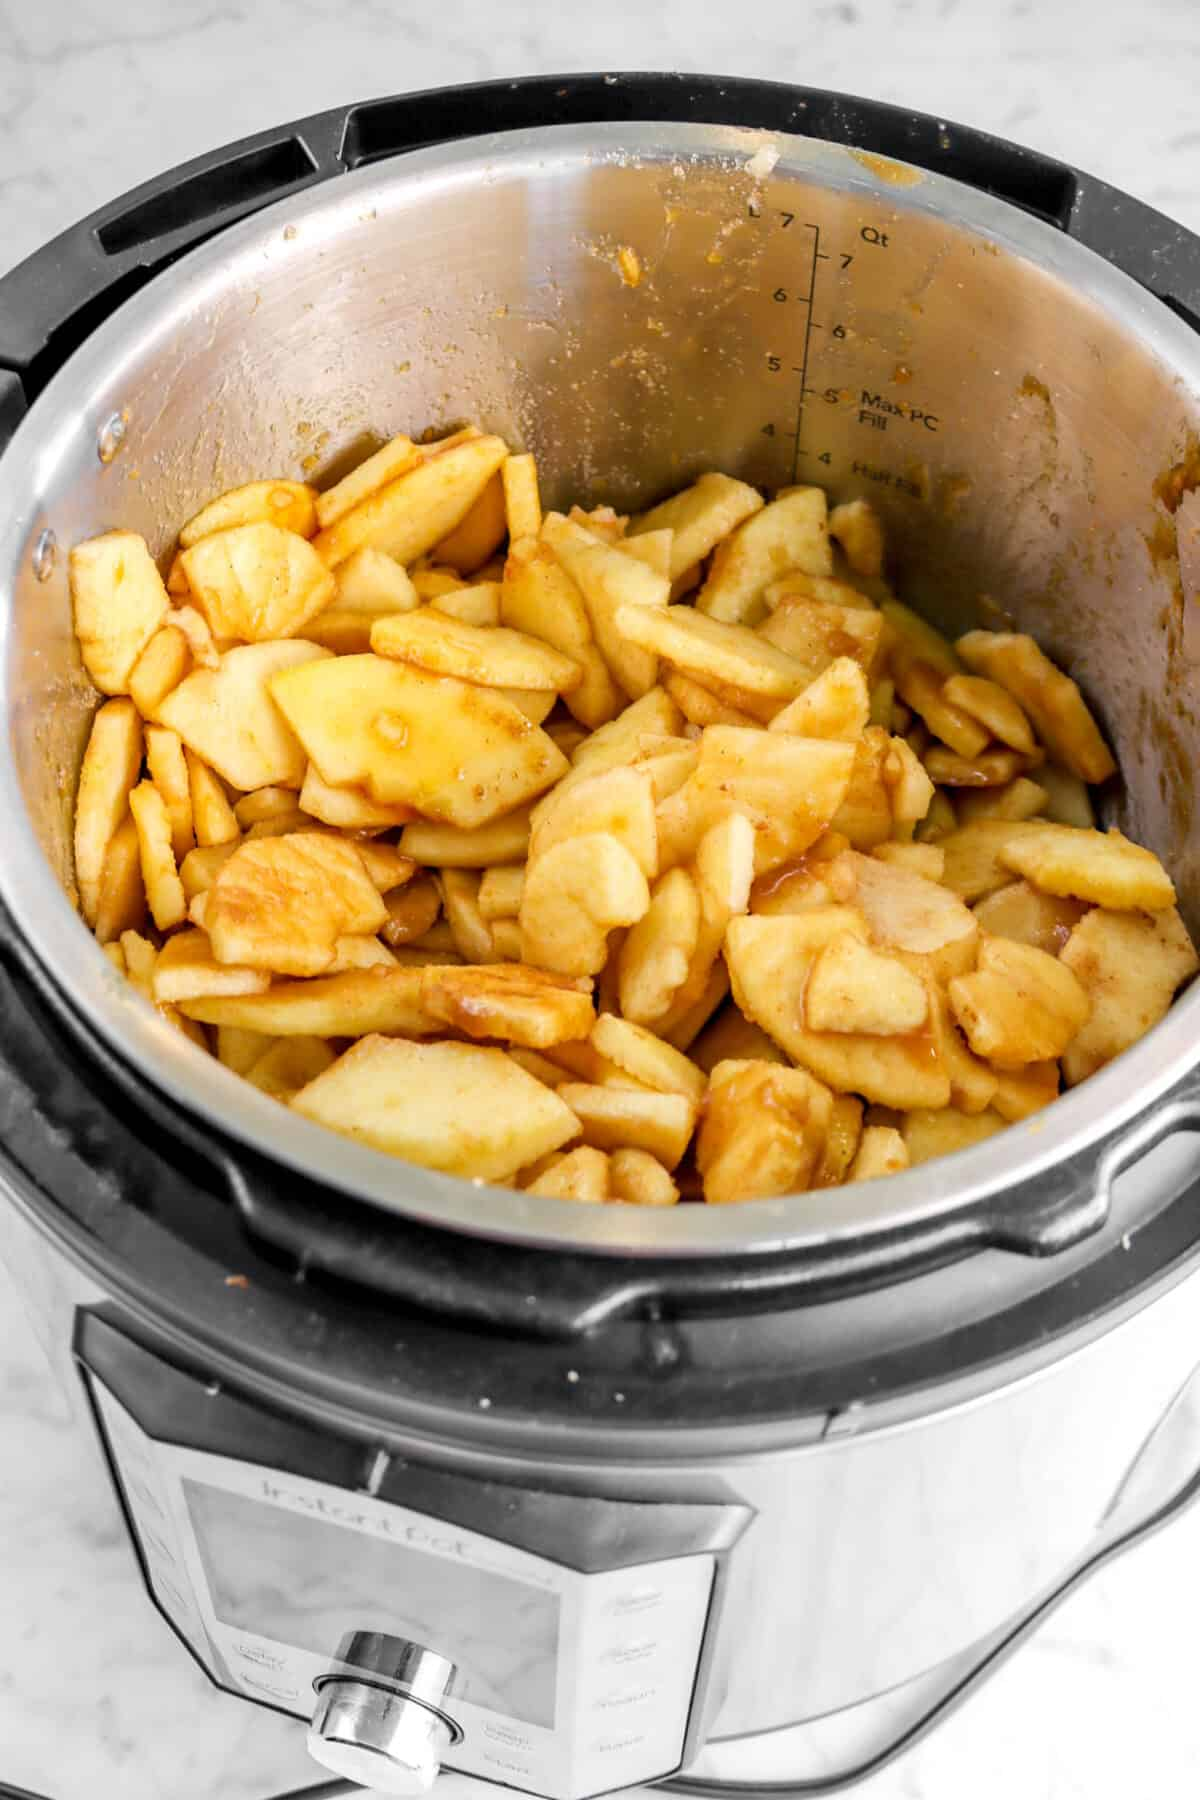 apples tossed with other ingredients in an instant pot